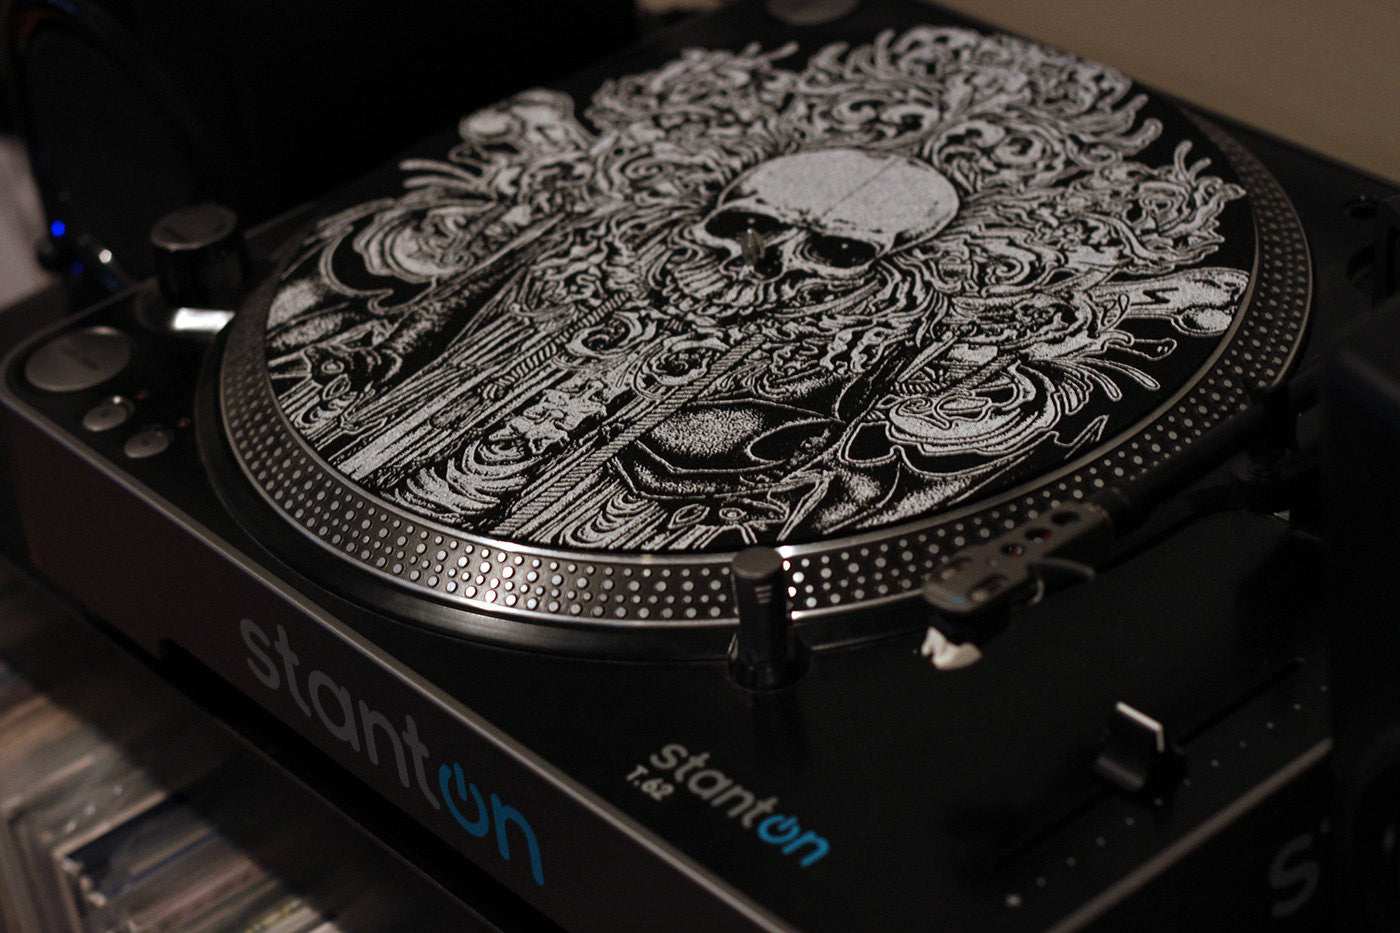 goth metal death skull bat vinyl turntable slipmat